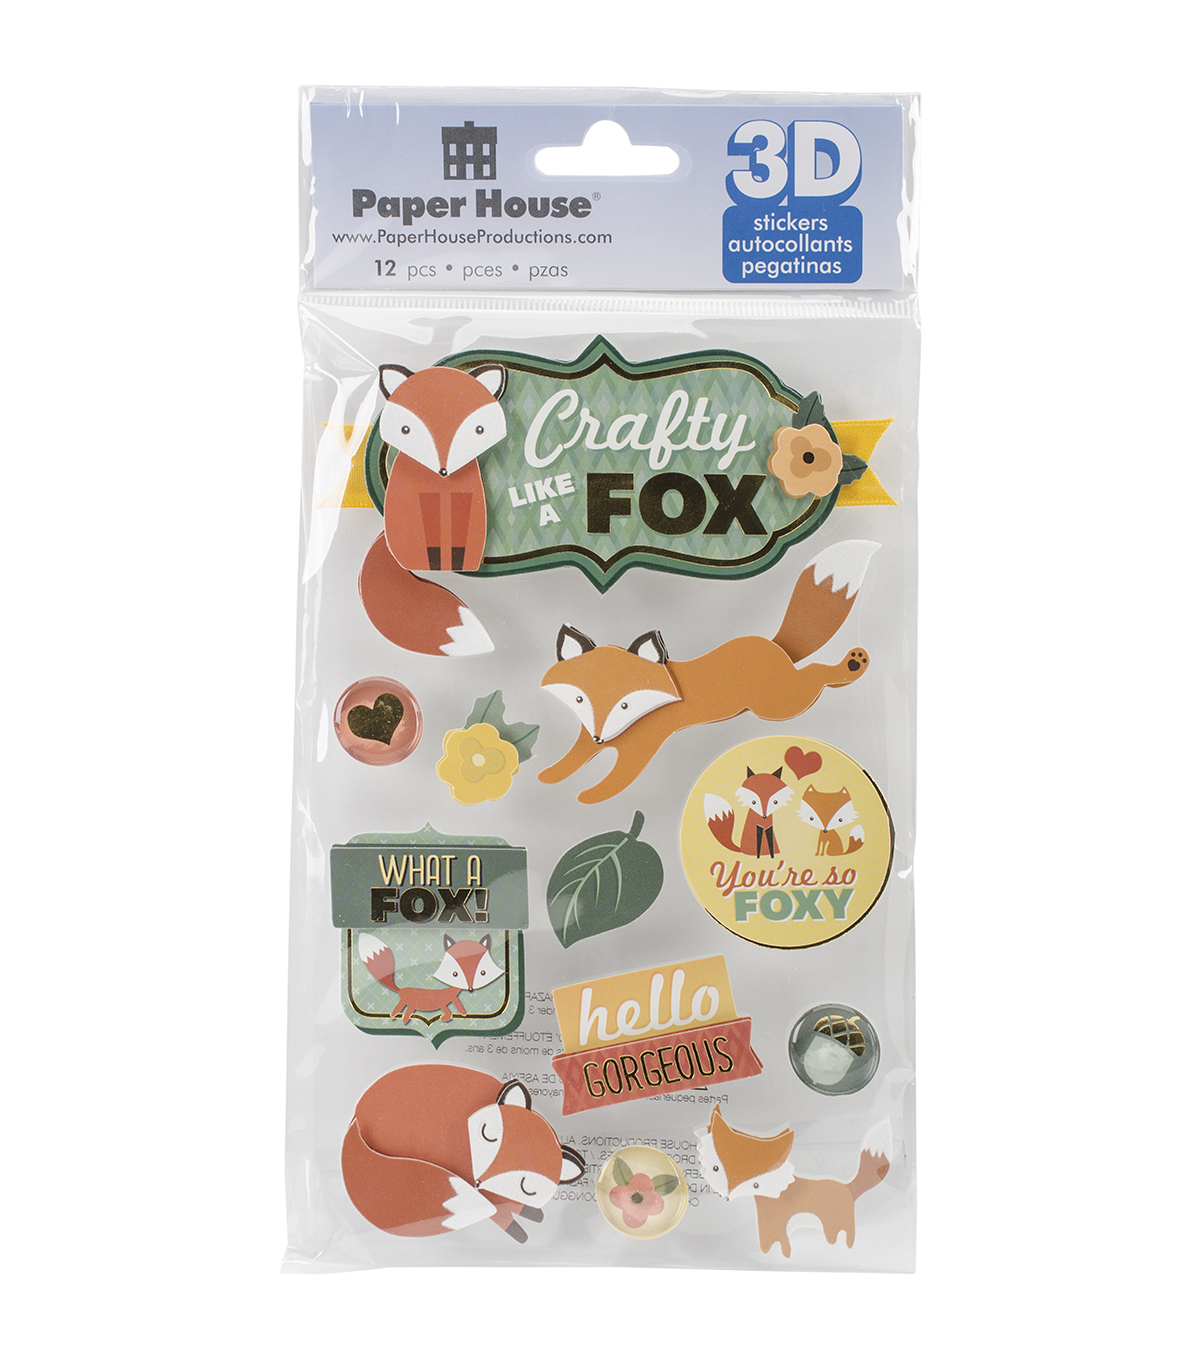 Paper House® 3D Stickers-Crafty Like A Fox